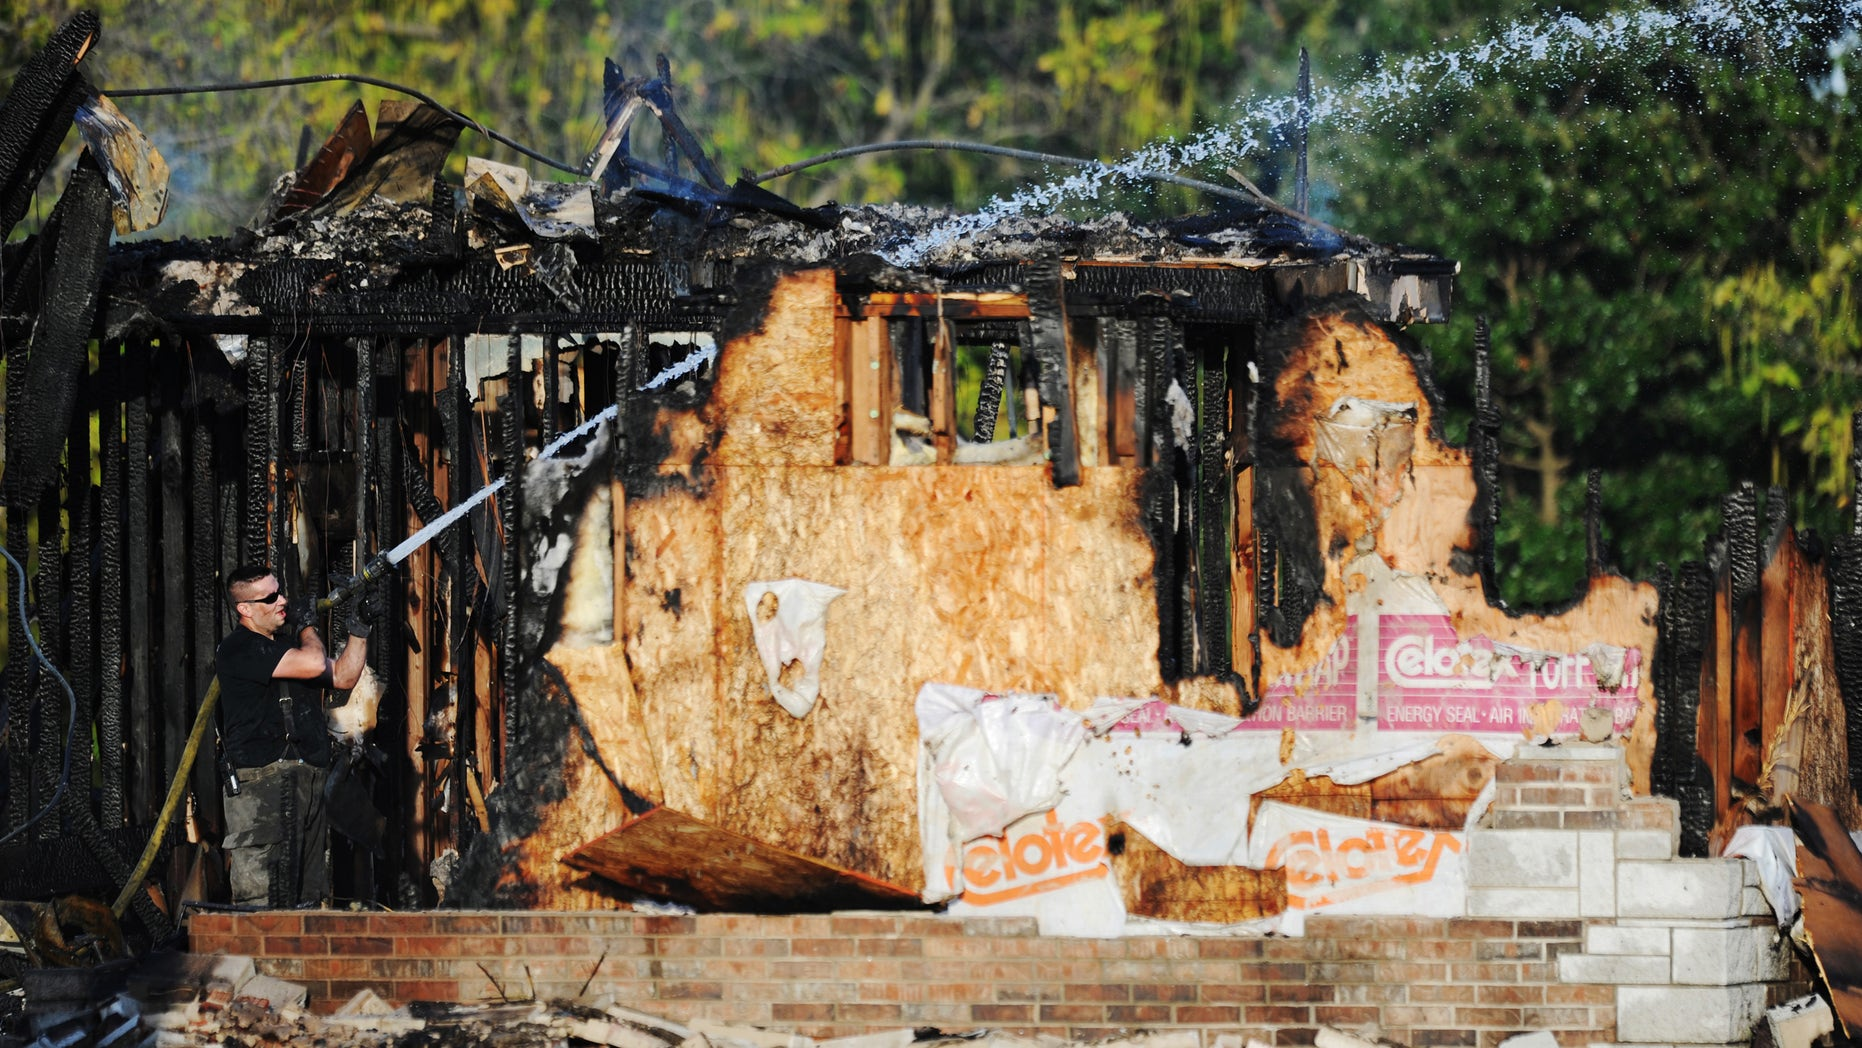 Aug. 6, 2012-  A Carl Junction, Missouri firefighter works to extinguish the smoldering remains of the Islamic Society of Joplin mosque.